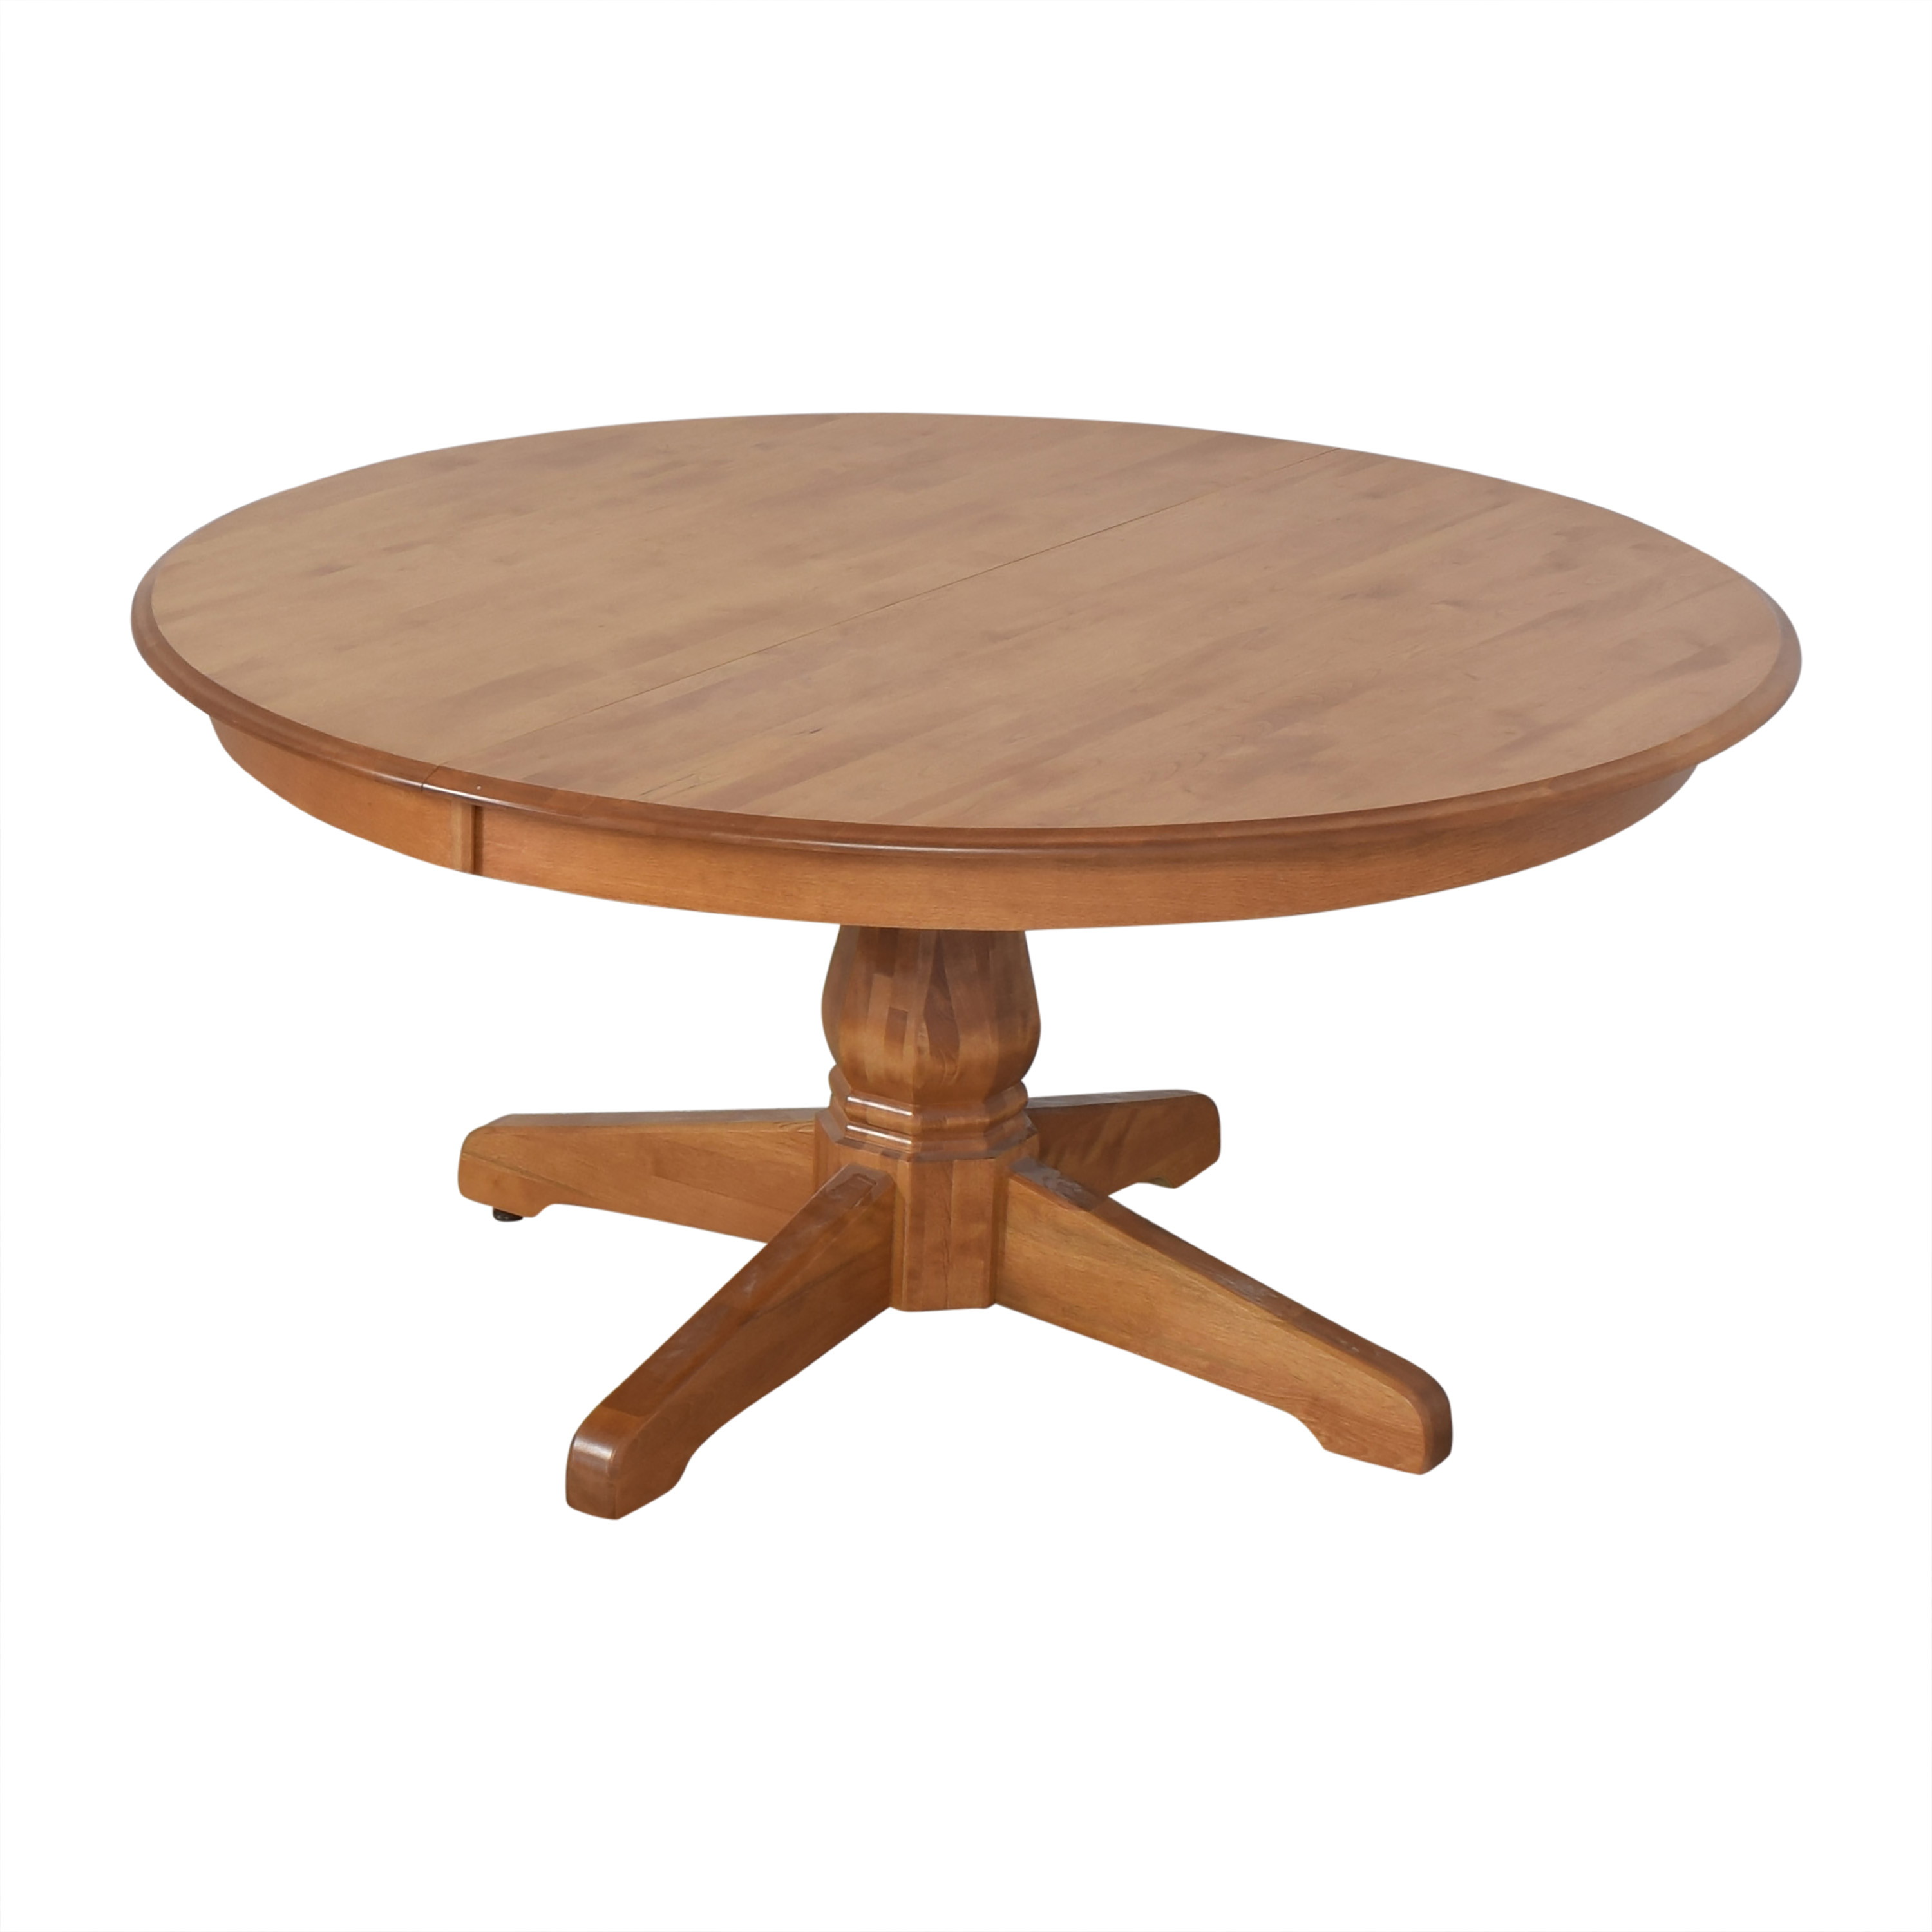 Canadel Canadel Dining Room Table pa